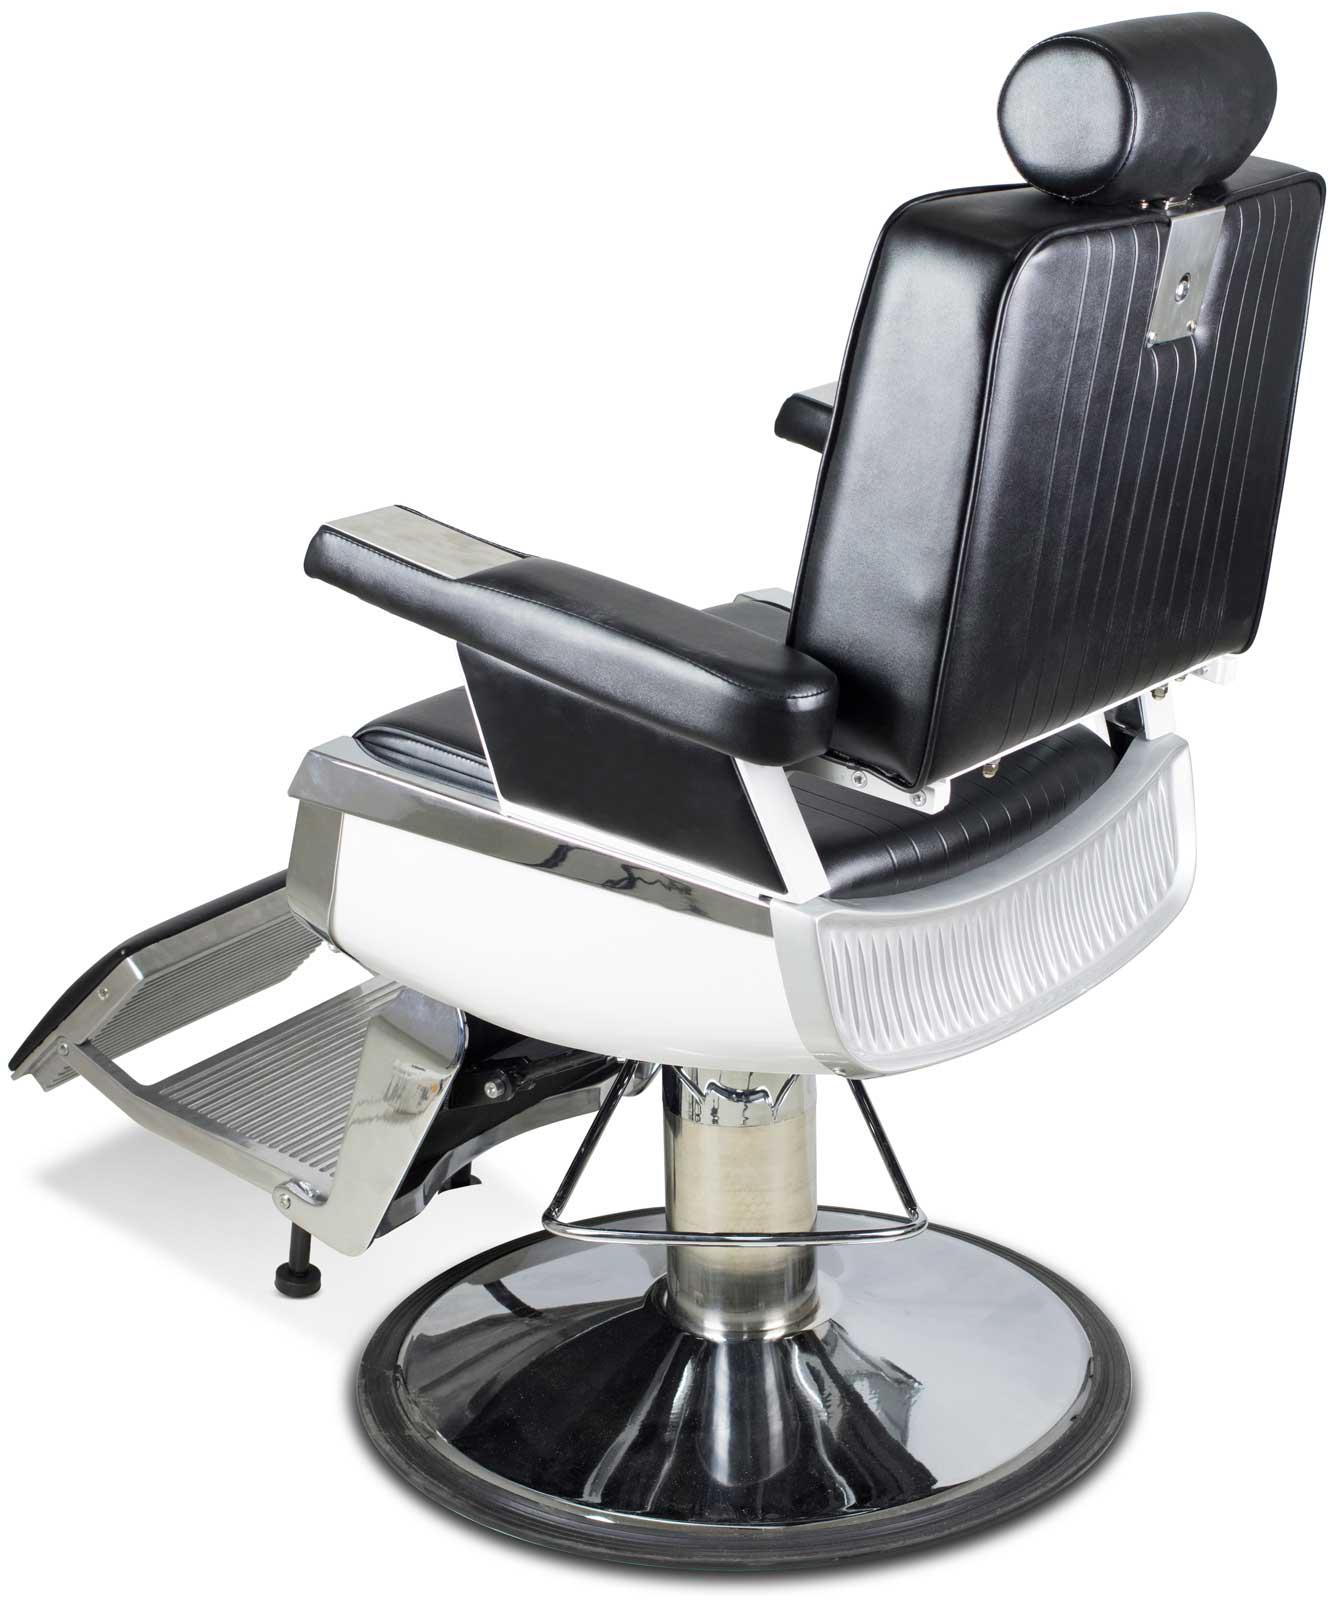 Vintage Barber Chair Quottruman Quot Vintage Reclining Hair Salon Barber Chair Ebay